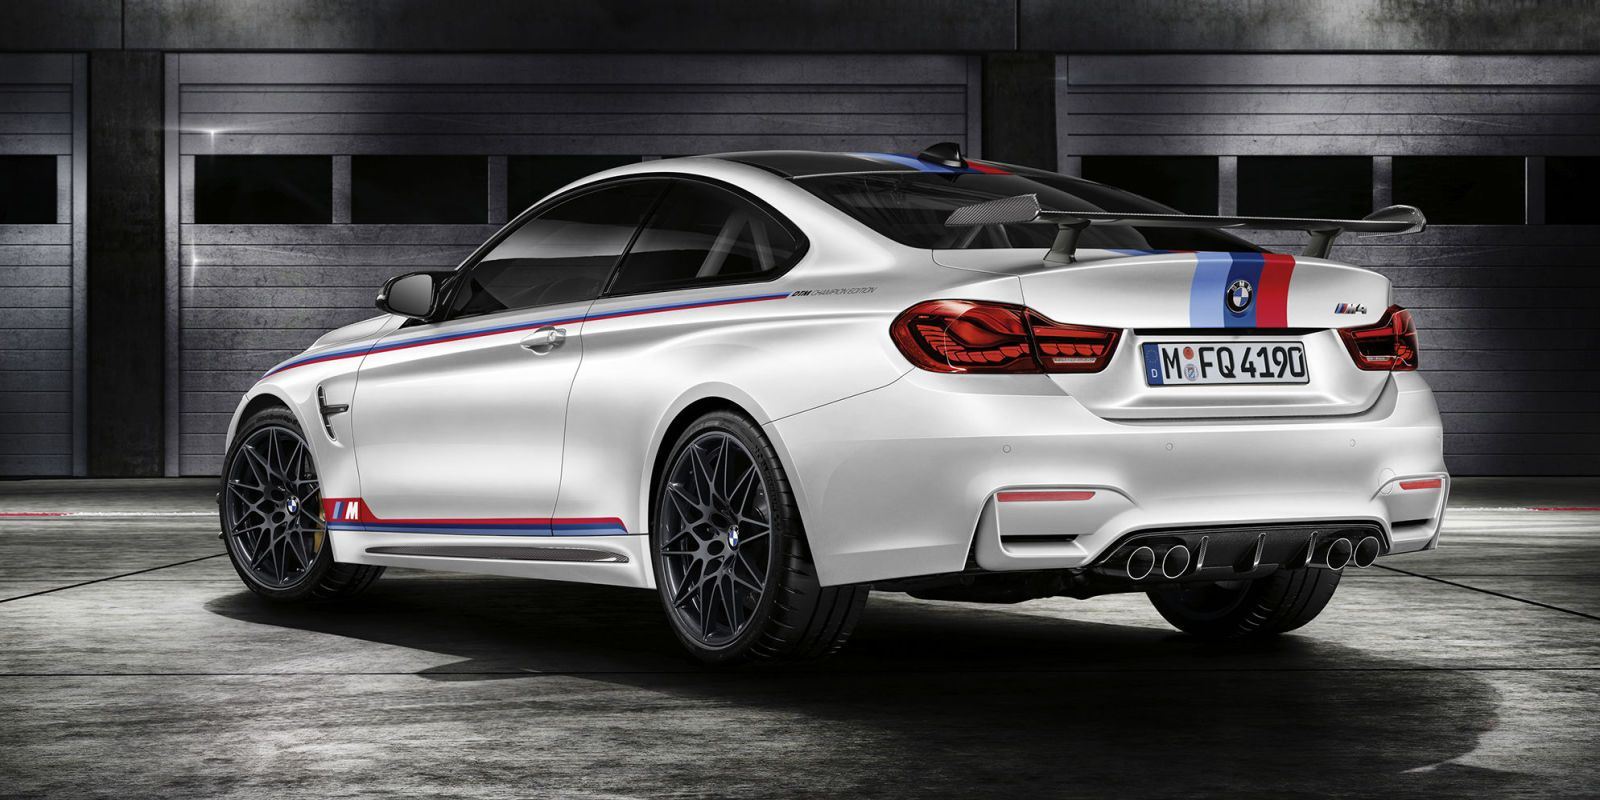 BMW Built a 494-HP M4 to Celebrate Its DTM Championship